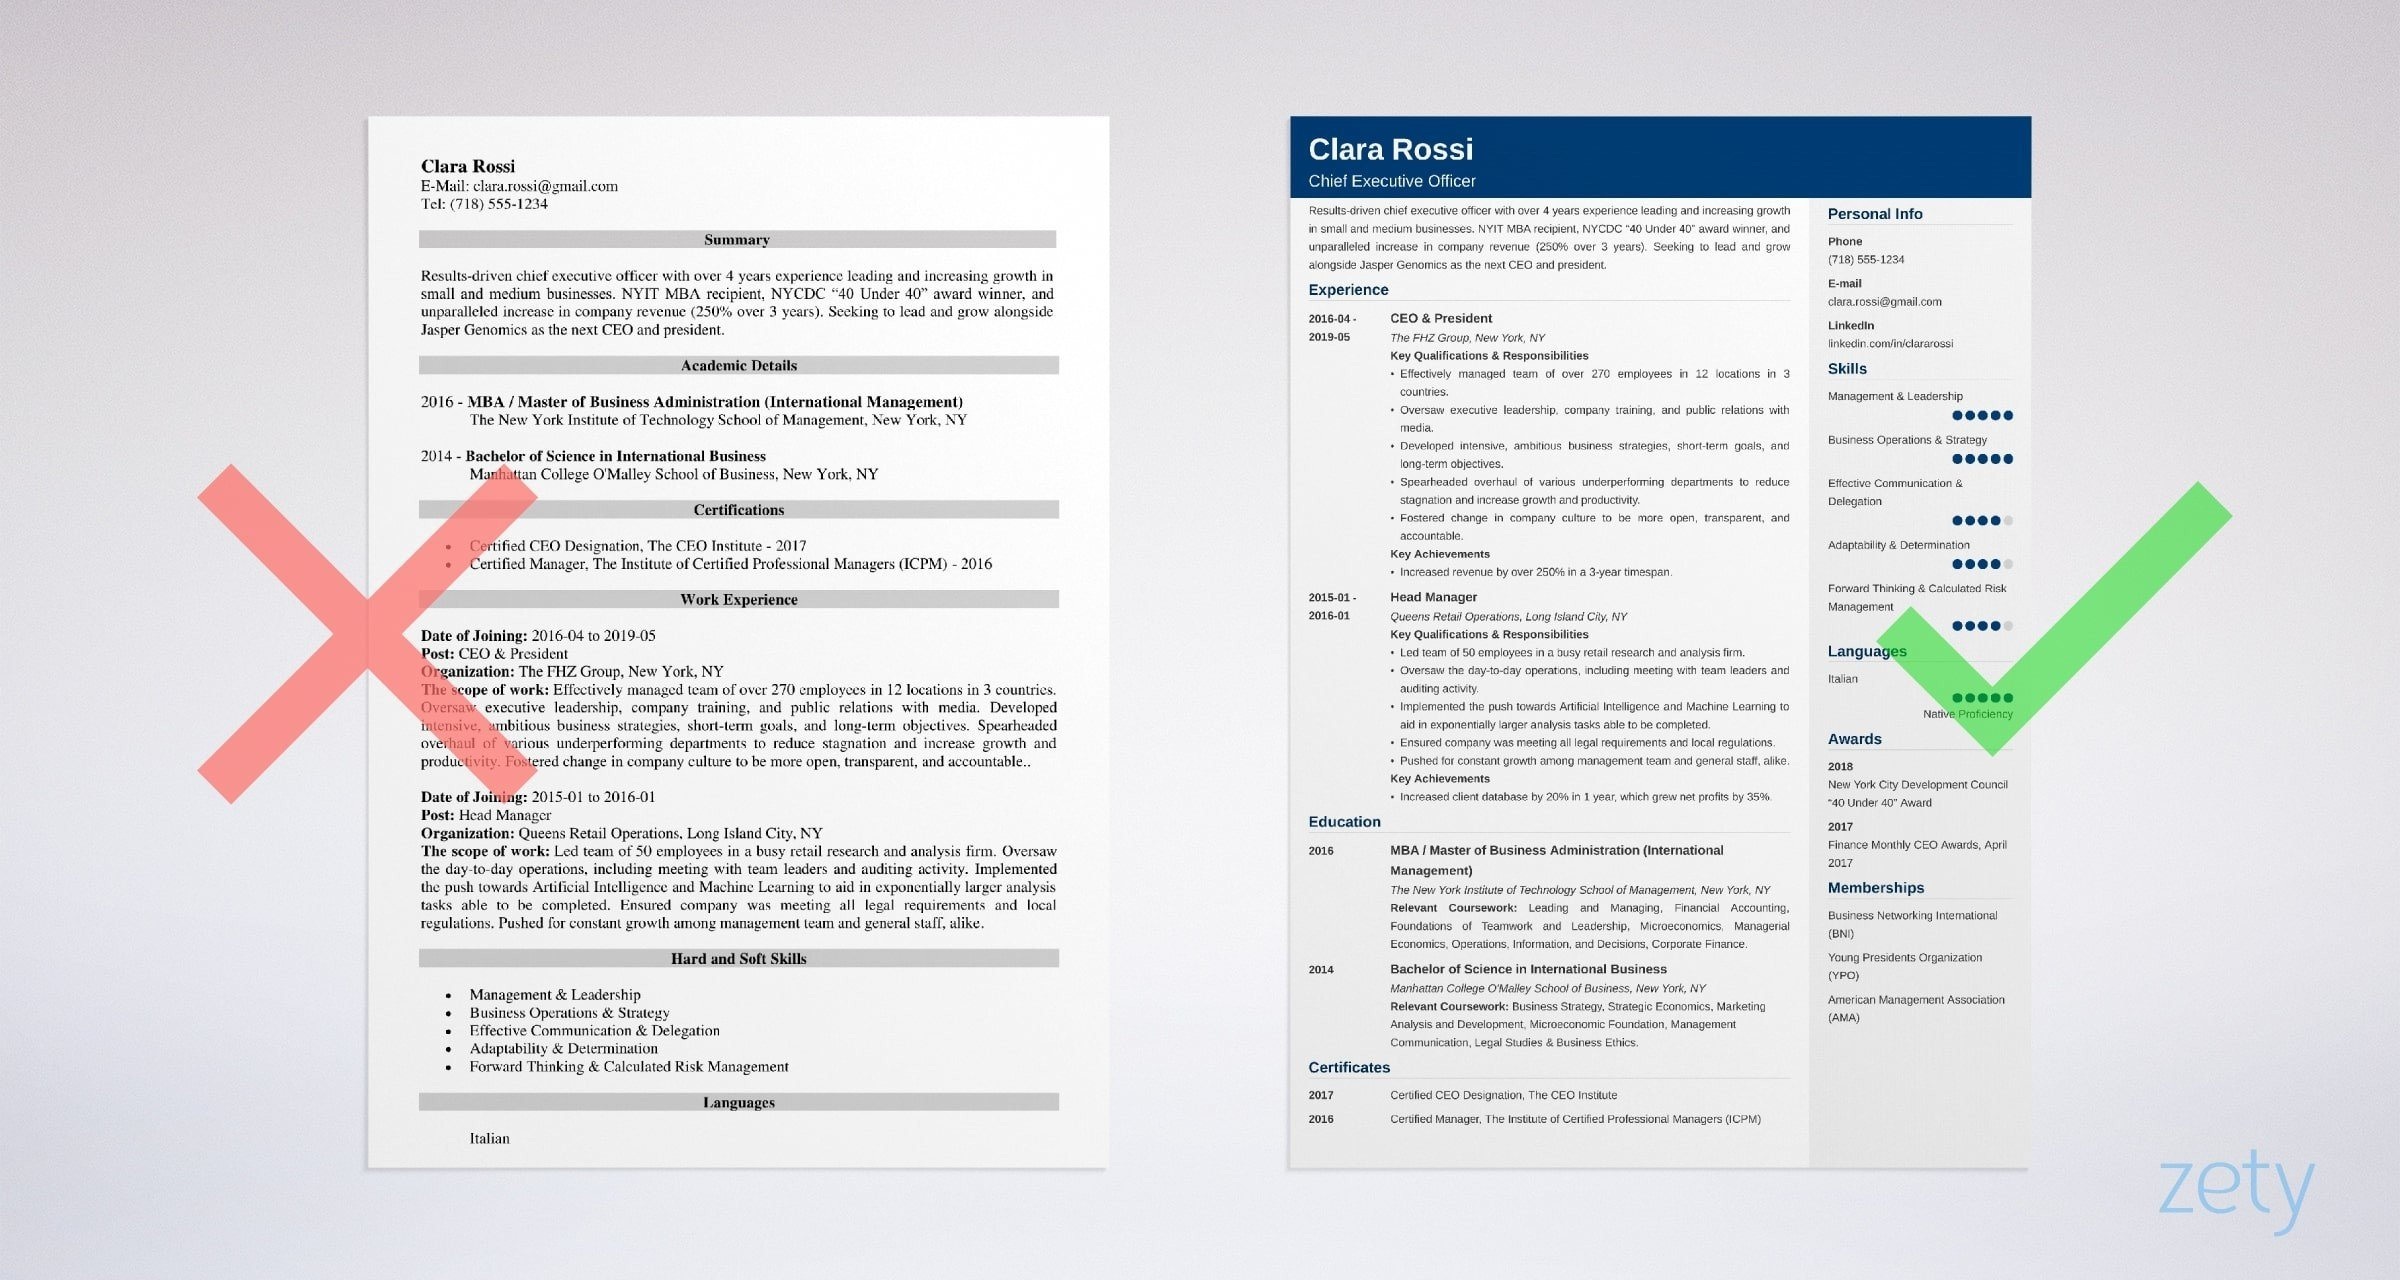 chief executive officer ceo resume template examples core competencies example sample for Resume Core Competencies Resume 2017